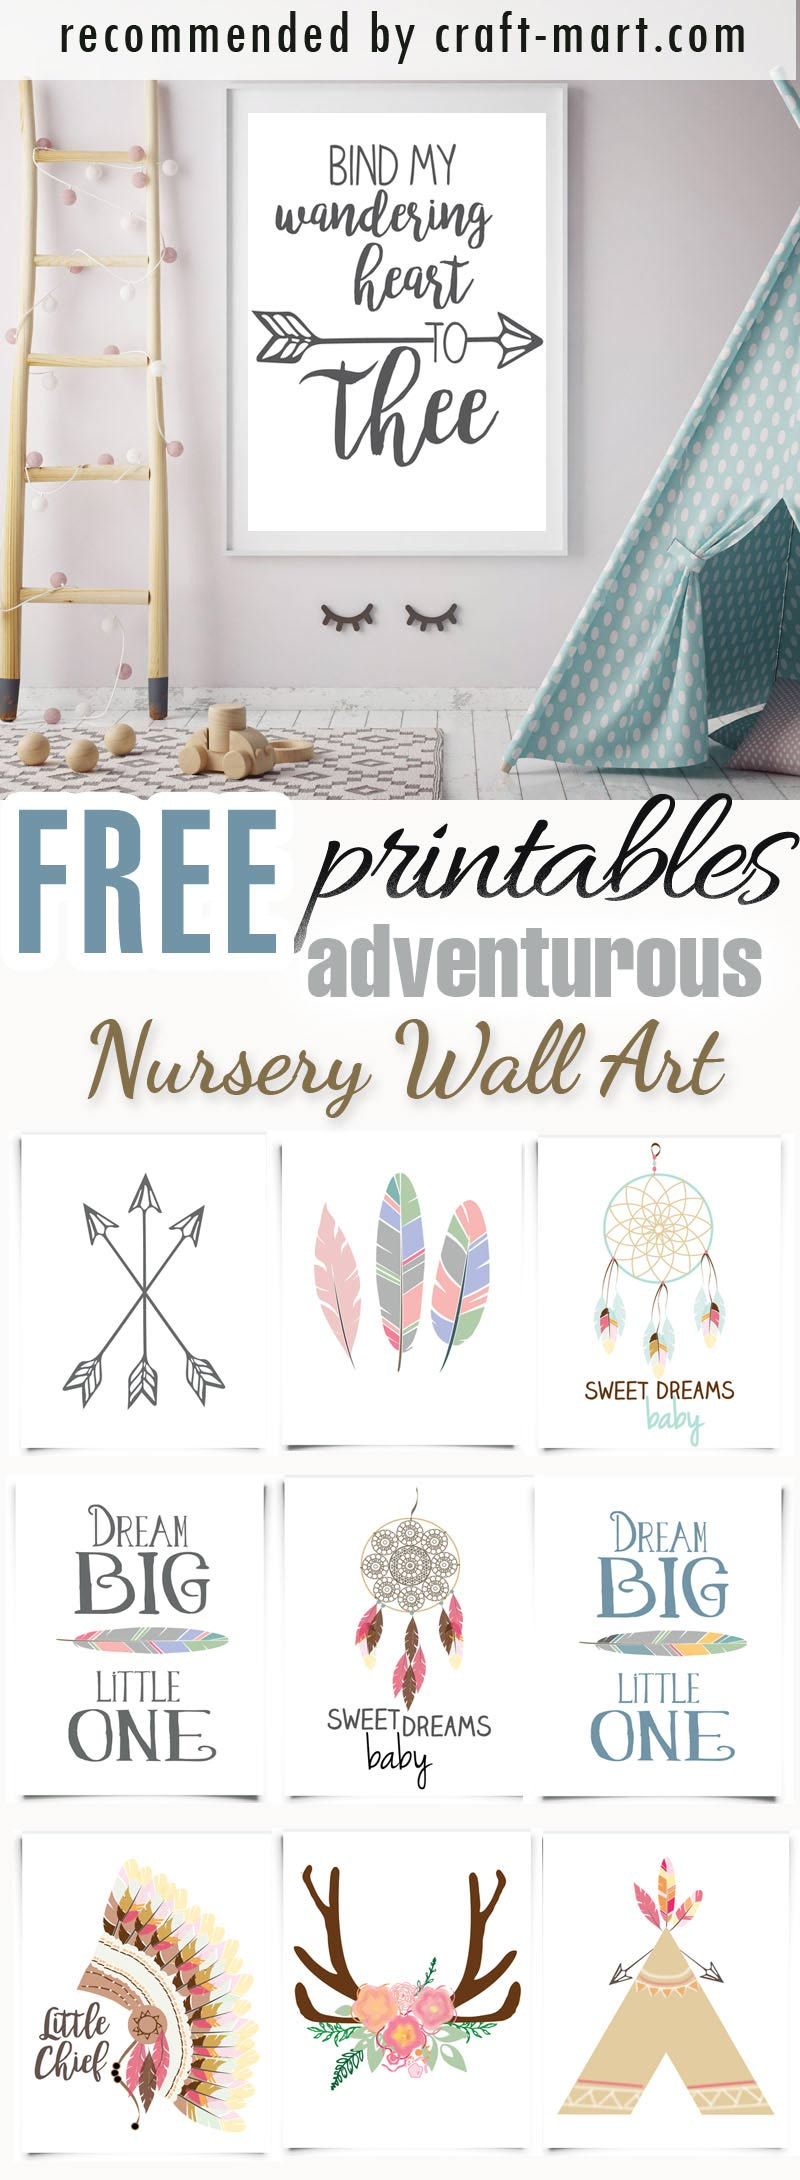 photograph about Free Printable Nursery Art identify 100+ Excellent Free of charge Nursery Printables and Wall Artwork - Craft-Mart